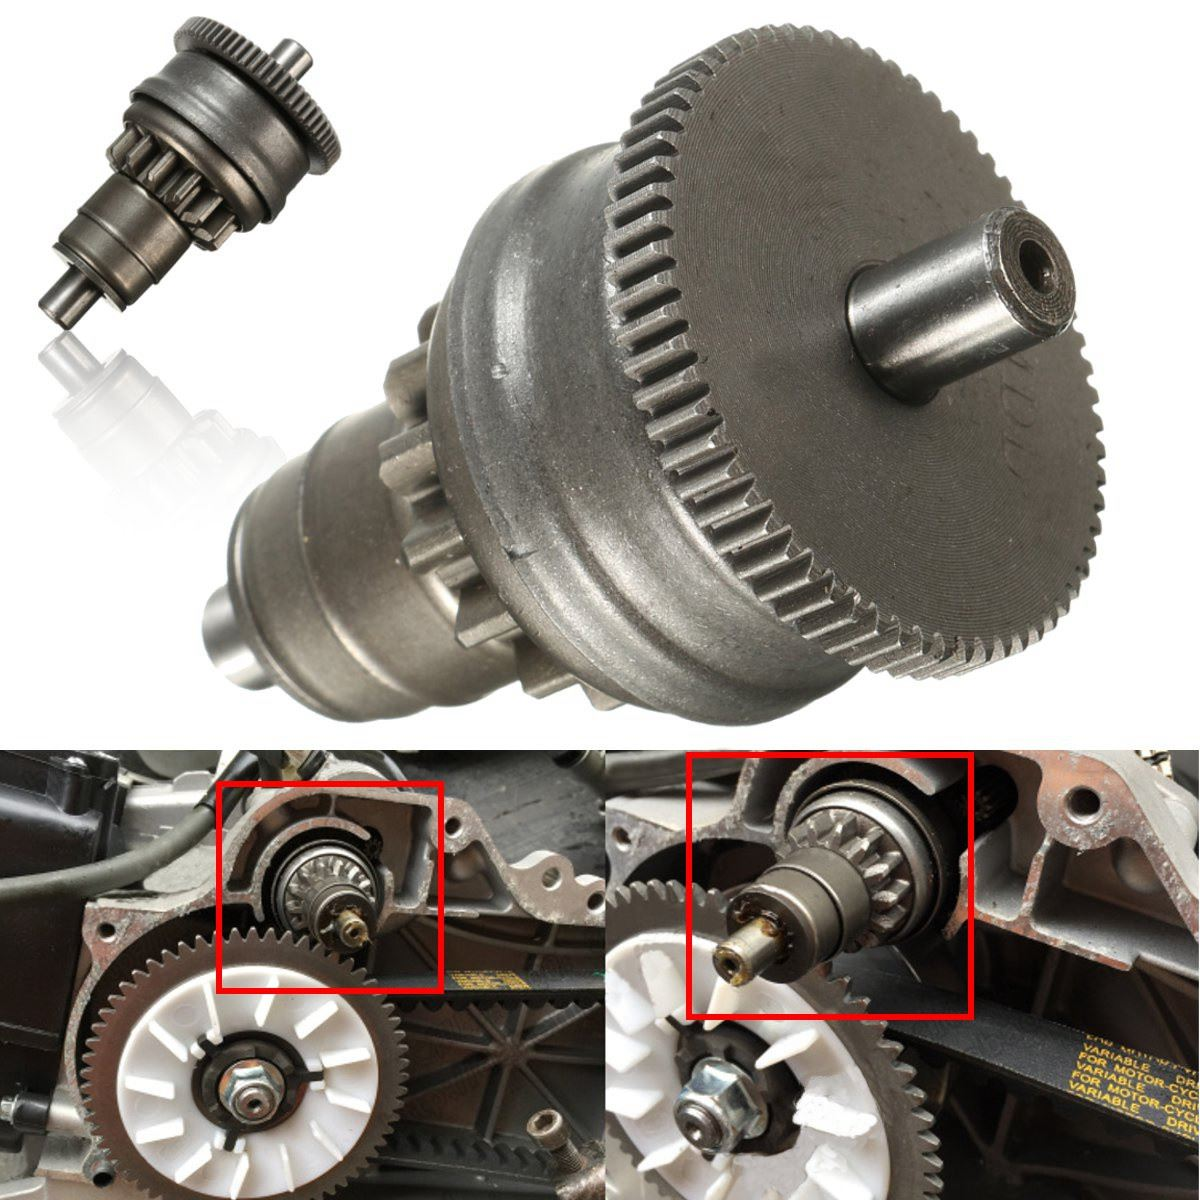 medium resolution of chrome starter motor clutch gear assembly for gy6 49cc 50cc 139qmb scooter mopeds atv in engines from automobiles motorcycles on aliexpress com alibaba